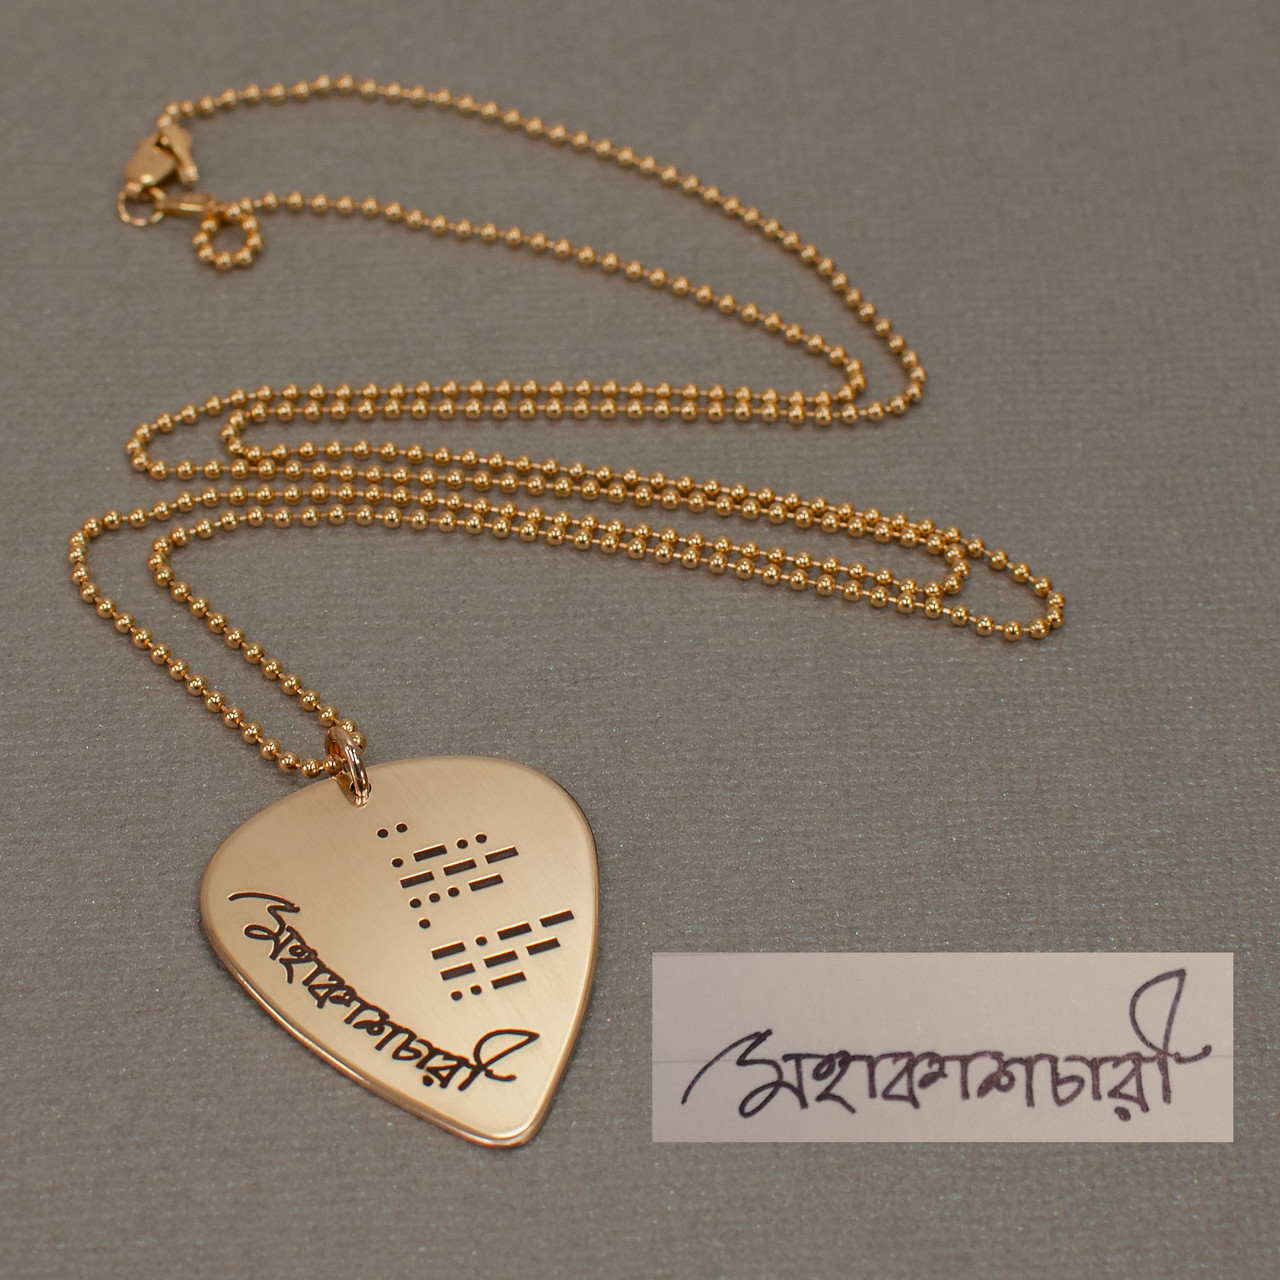 Gold guitar pick necklace with actual handwriting, with morse code message